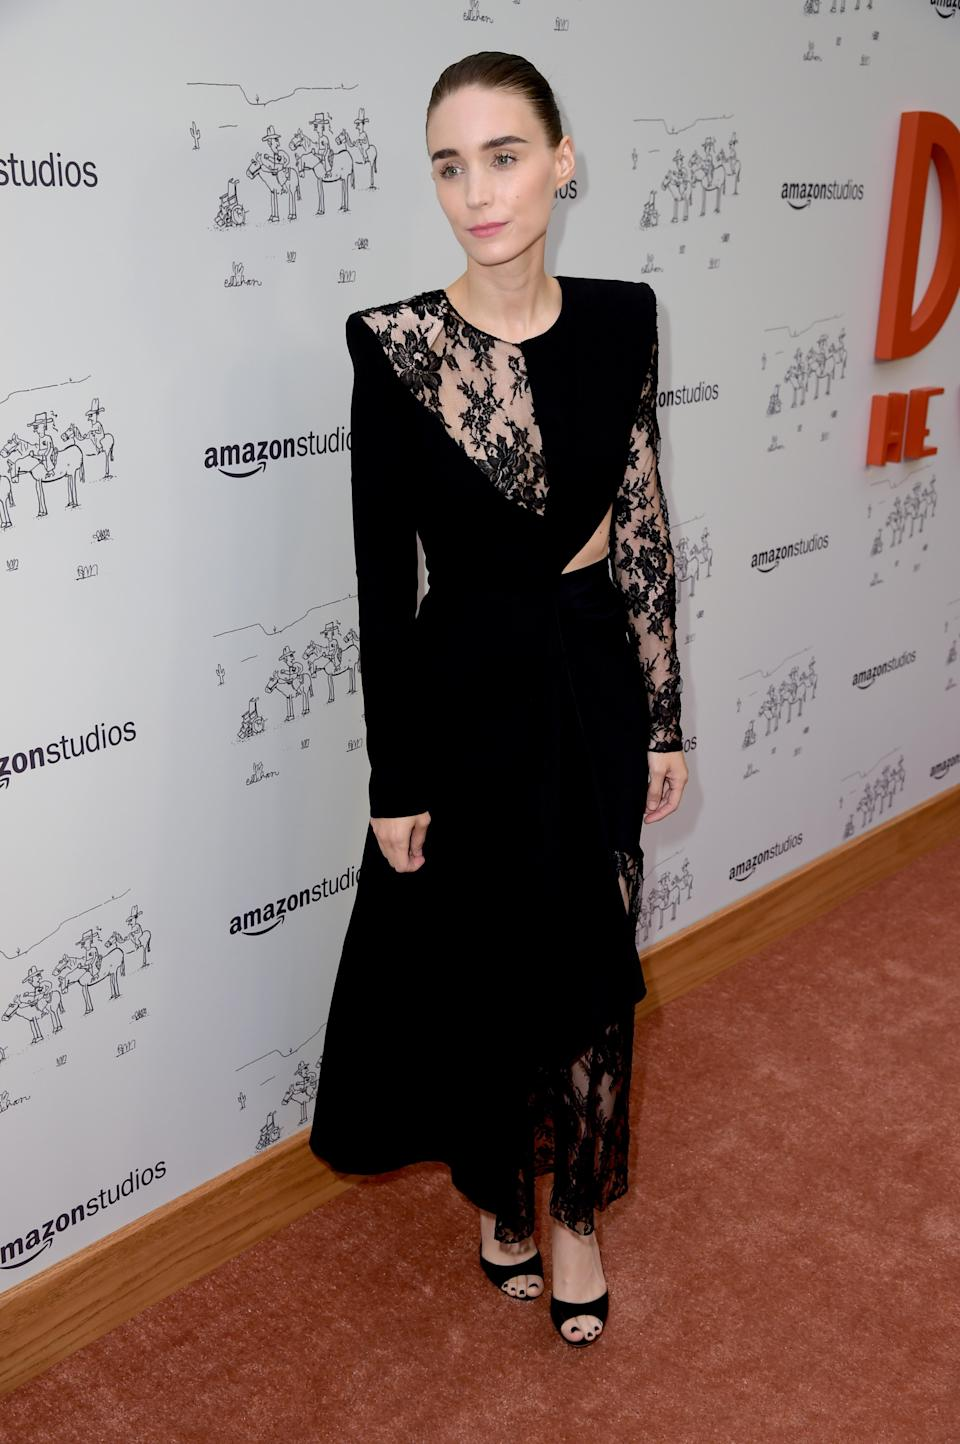 <p>On 11 July, Rooney Mara attended the premiere of 'Don't Worry, He Wont Get Far On Foot' in a Givenchy number. <em>[Photo: Getty]</em> </p>